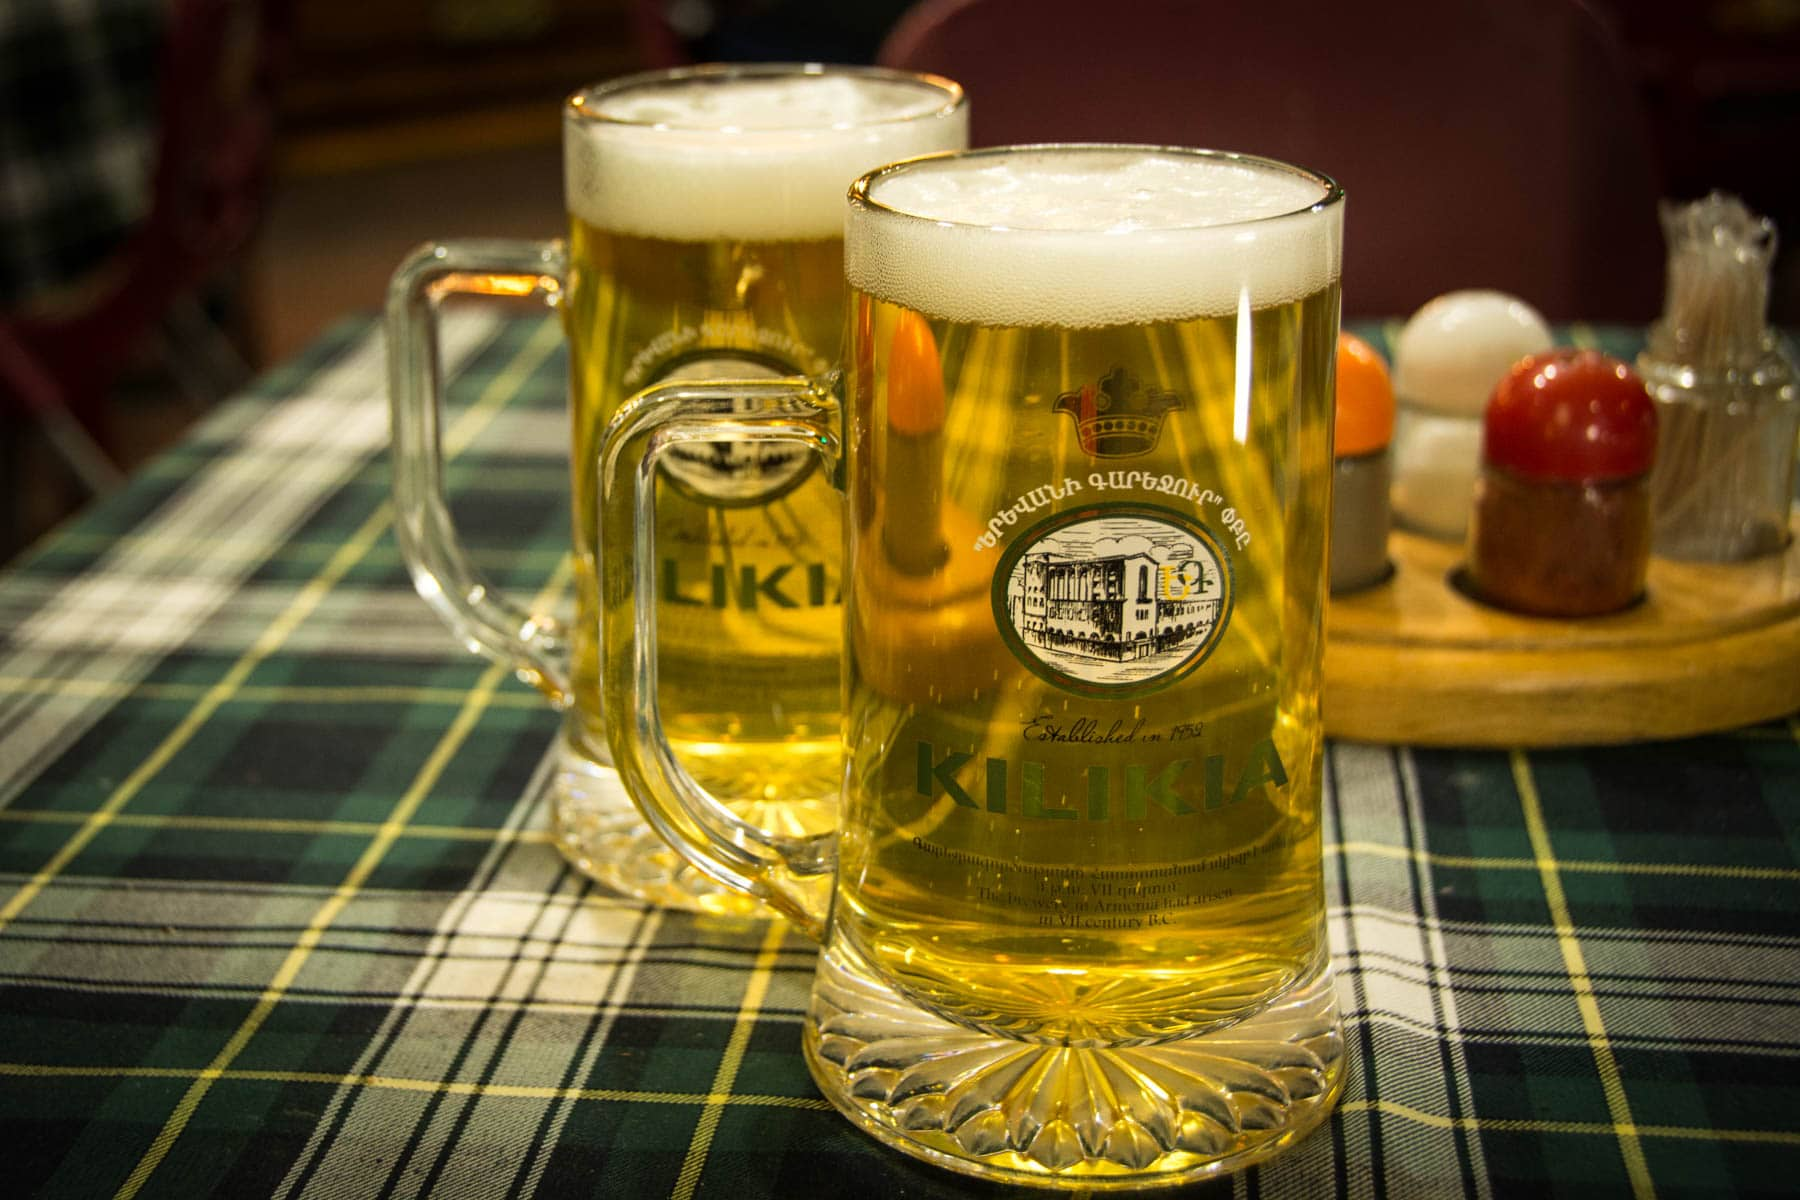 Two pints of Kilikia beer in Yerevan, Armenia.